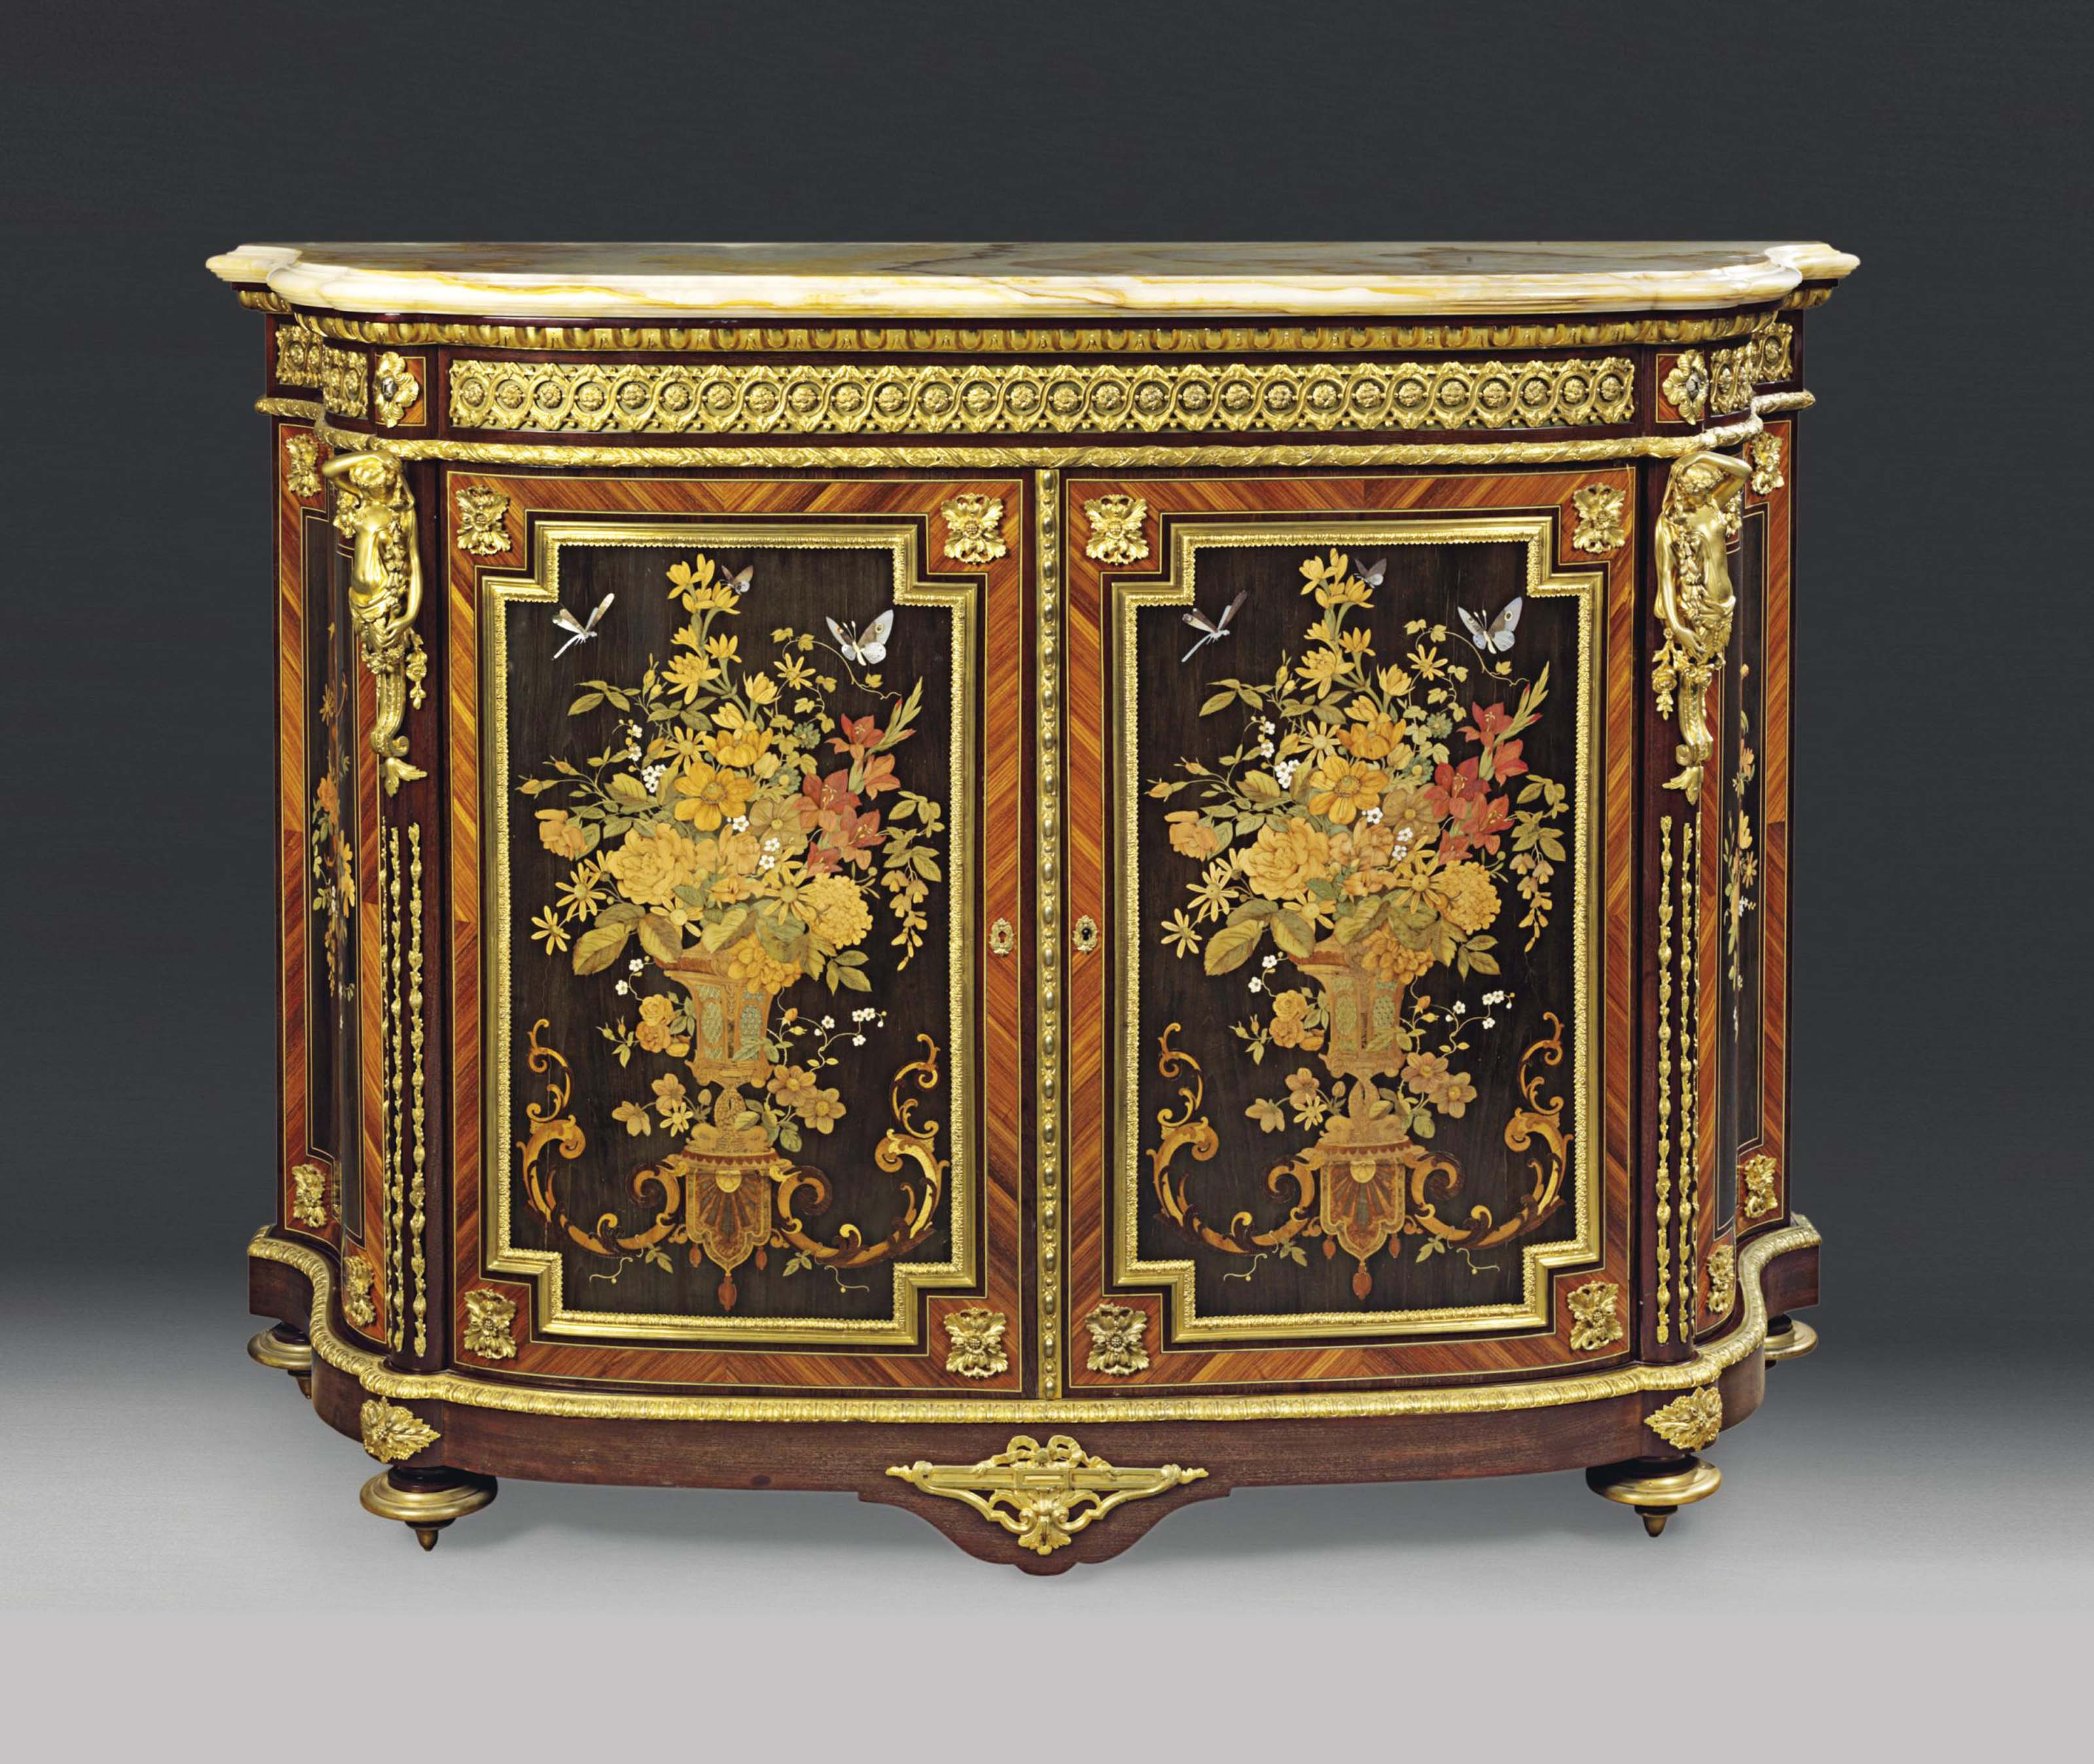 A LOUIS PHILIPPE ORMOLU-MOUNTED TULIPWOOD, EBONY, SYCAMORE, AMARANTH, MOTHER-OF-PEARL, IVORY AND MARQUETRY MEUBLE D'APPUI